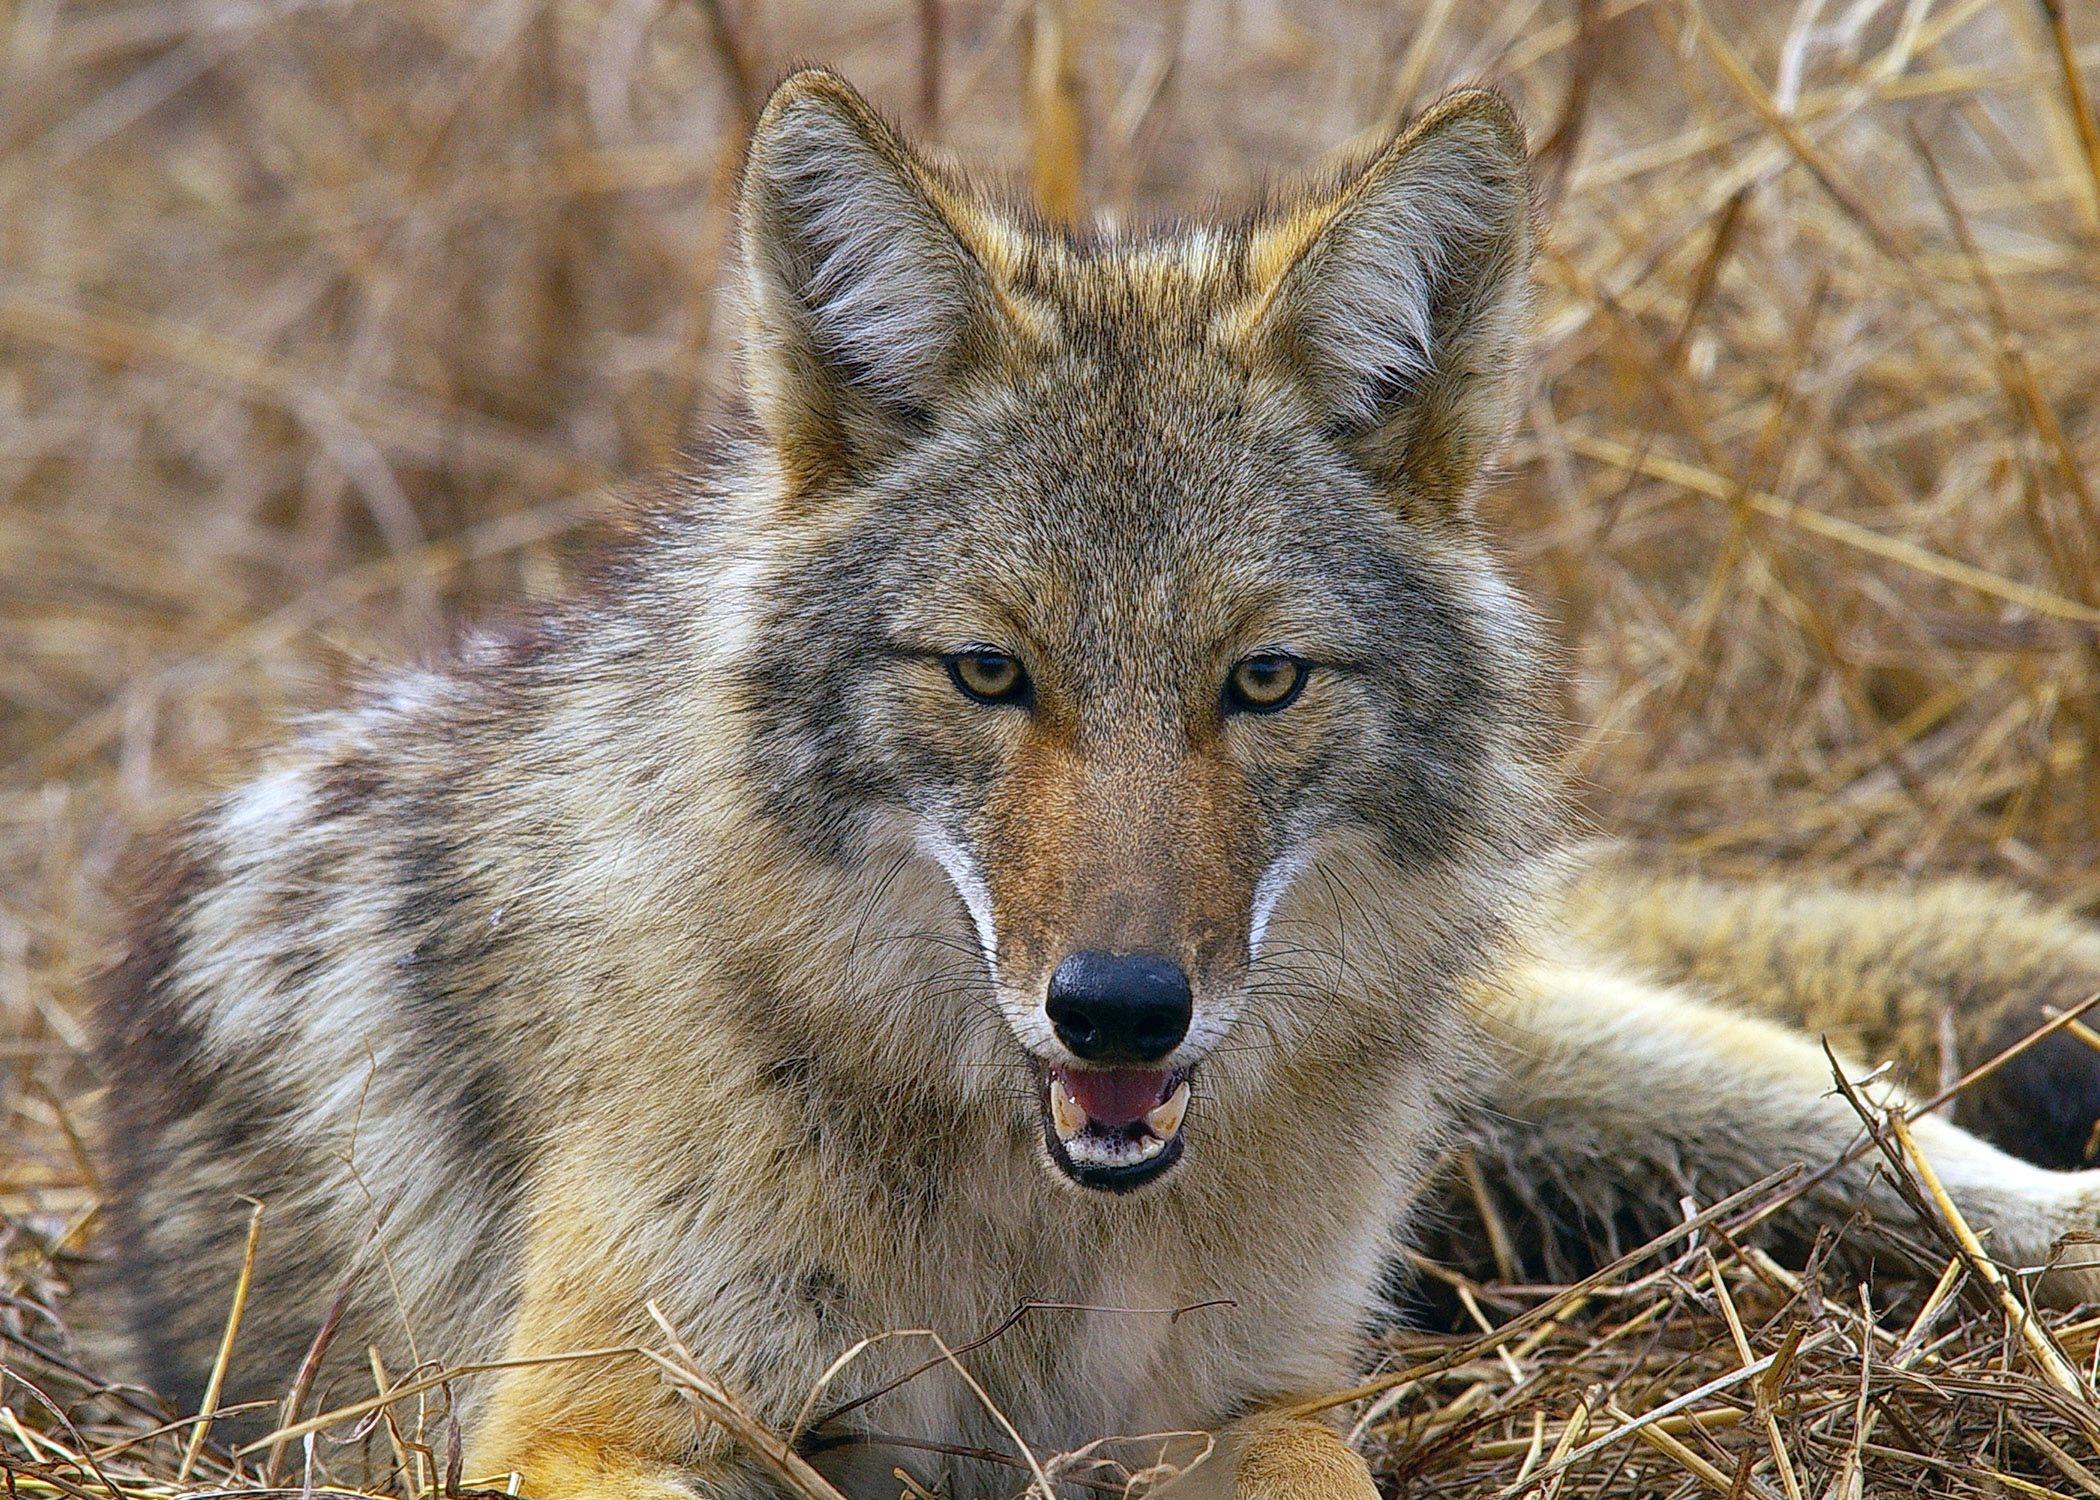 Coyote Face Image